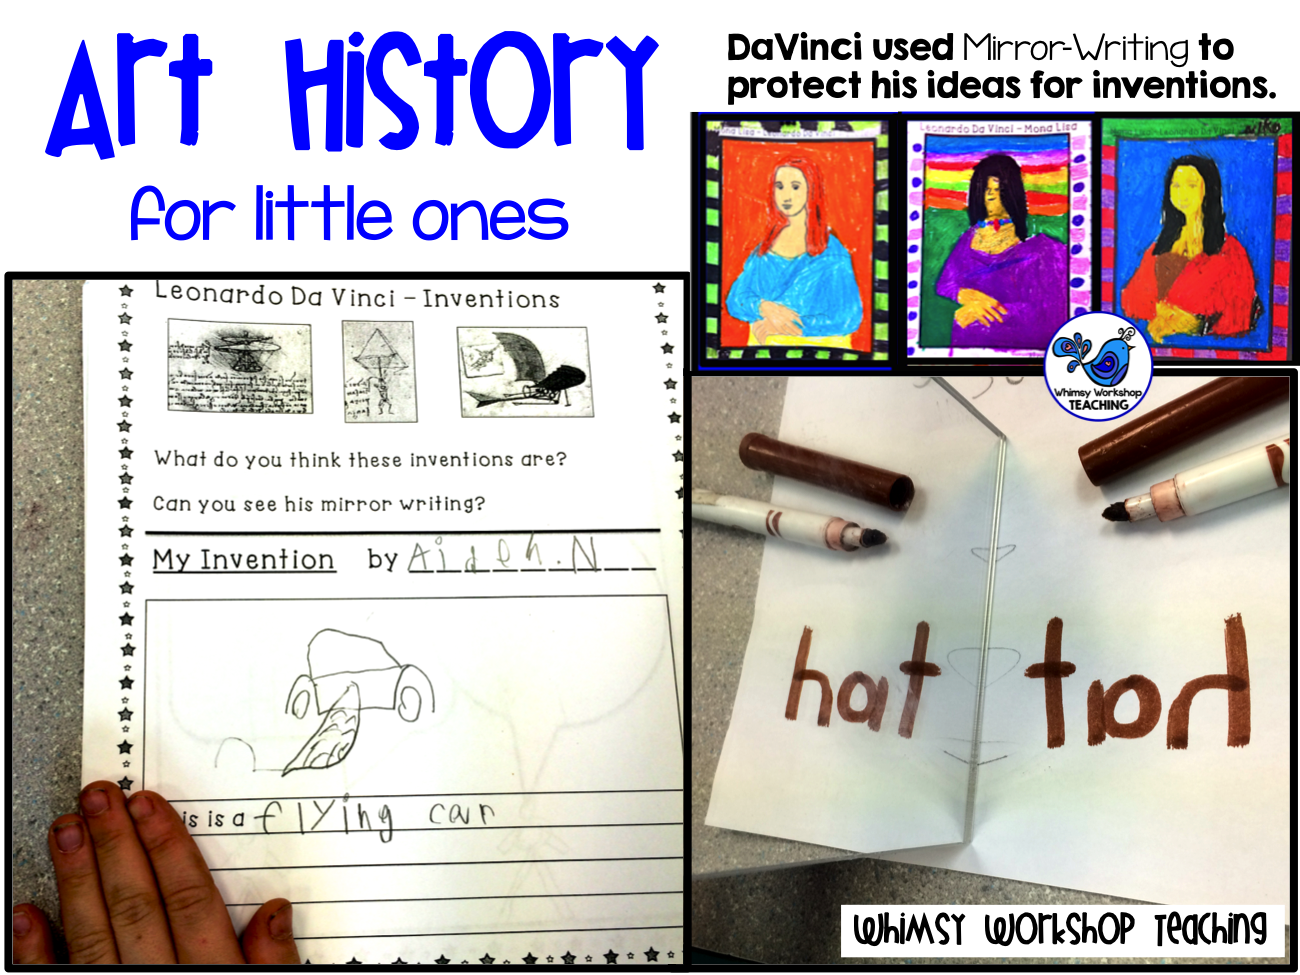 Art History for Little Ones 10 Lessons with teacher scripts!